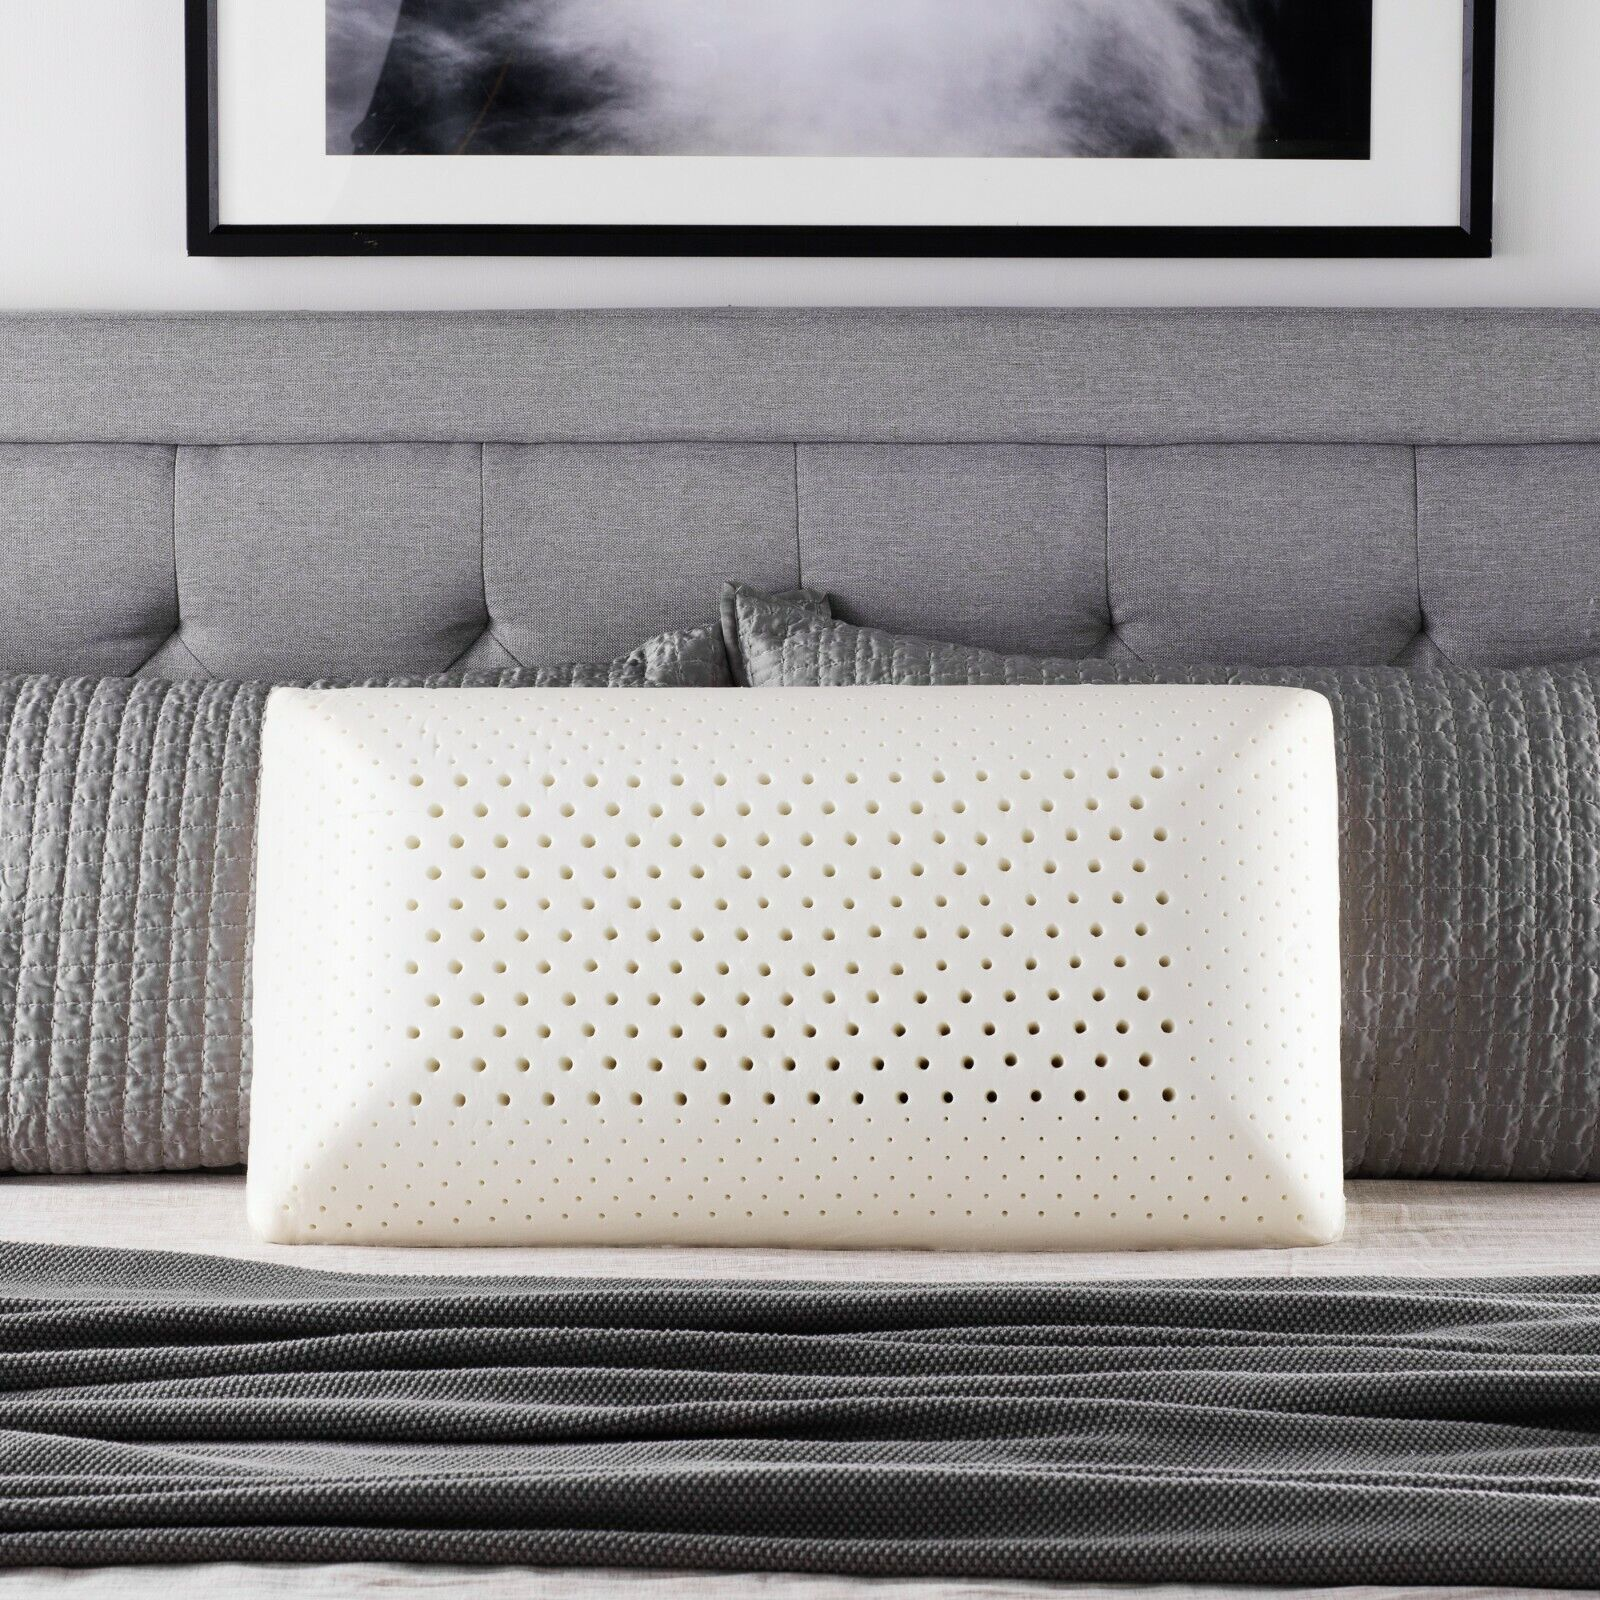 Z Shredded Latex Bed Pillow with 100/% Cotton Cover Returned in Damaged Package